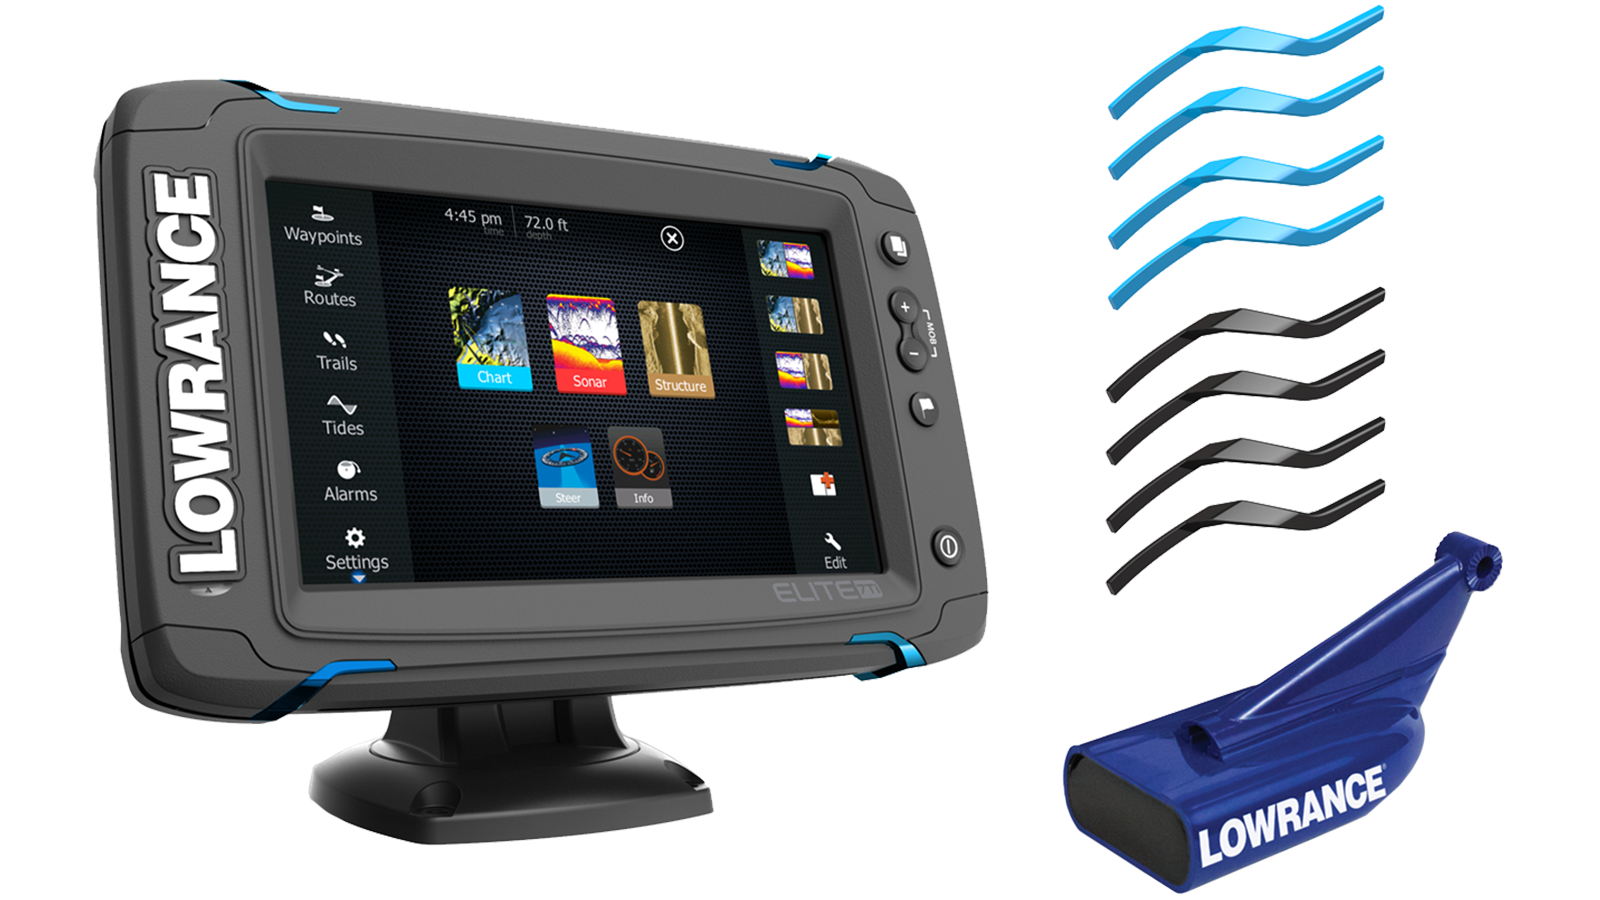 accessories lowrance usafrom mounting brackets to replacement cables, lowrance covers all marine electronic requirements in addition, free phone apps can be downloaded to keep